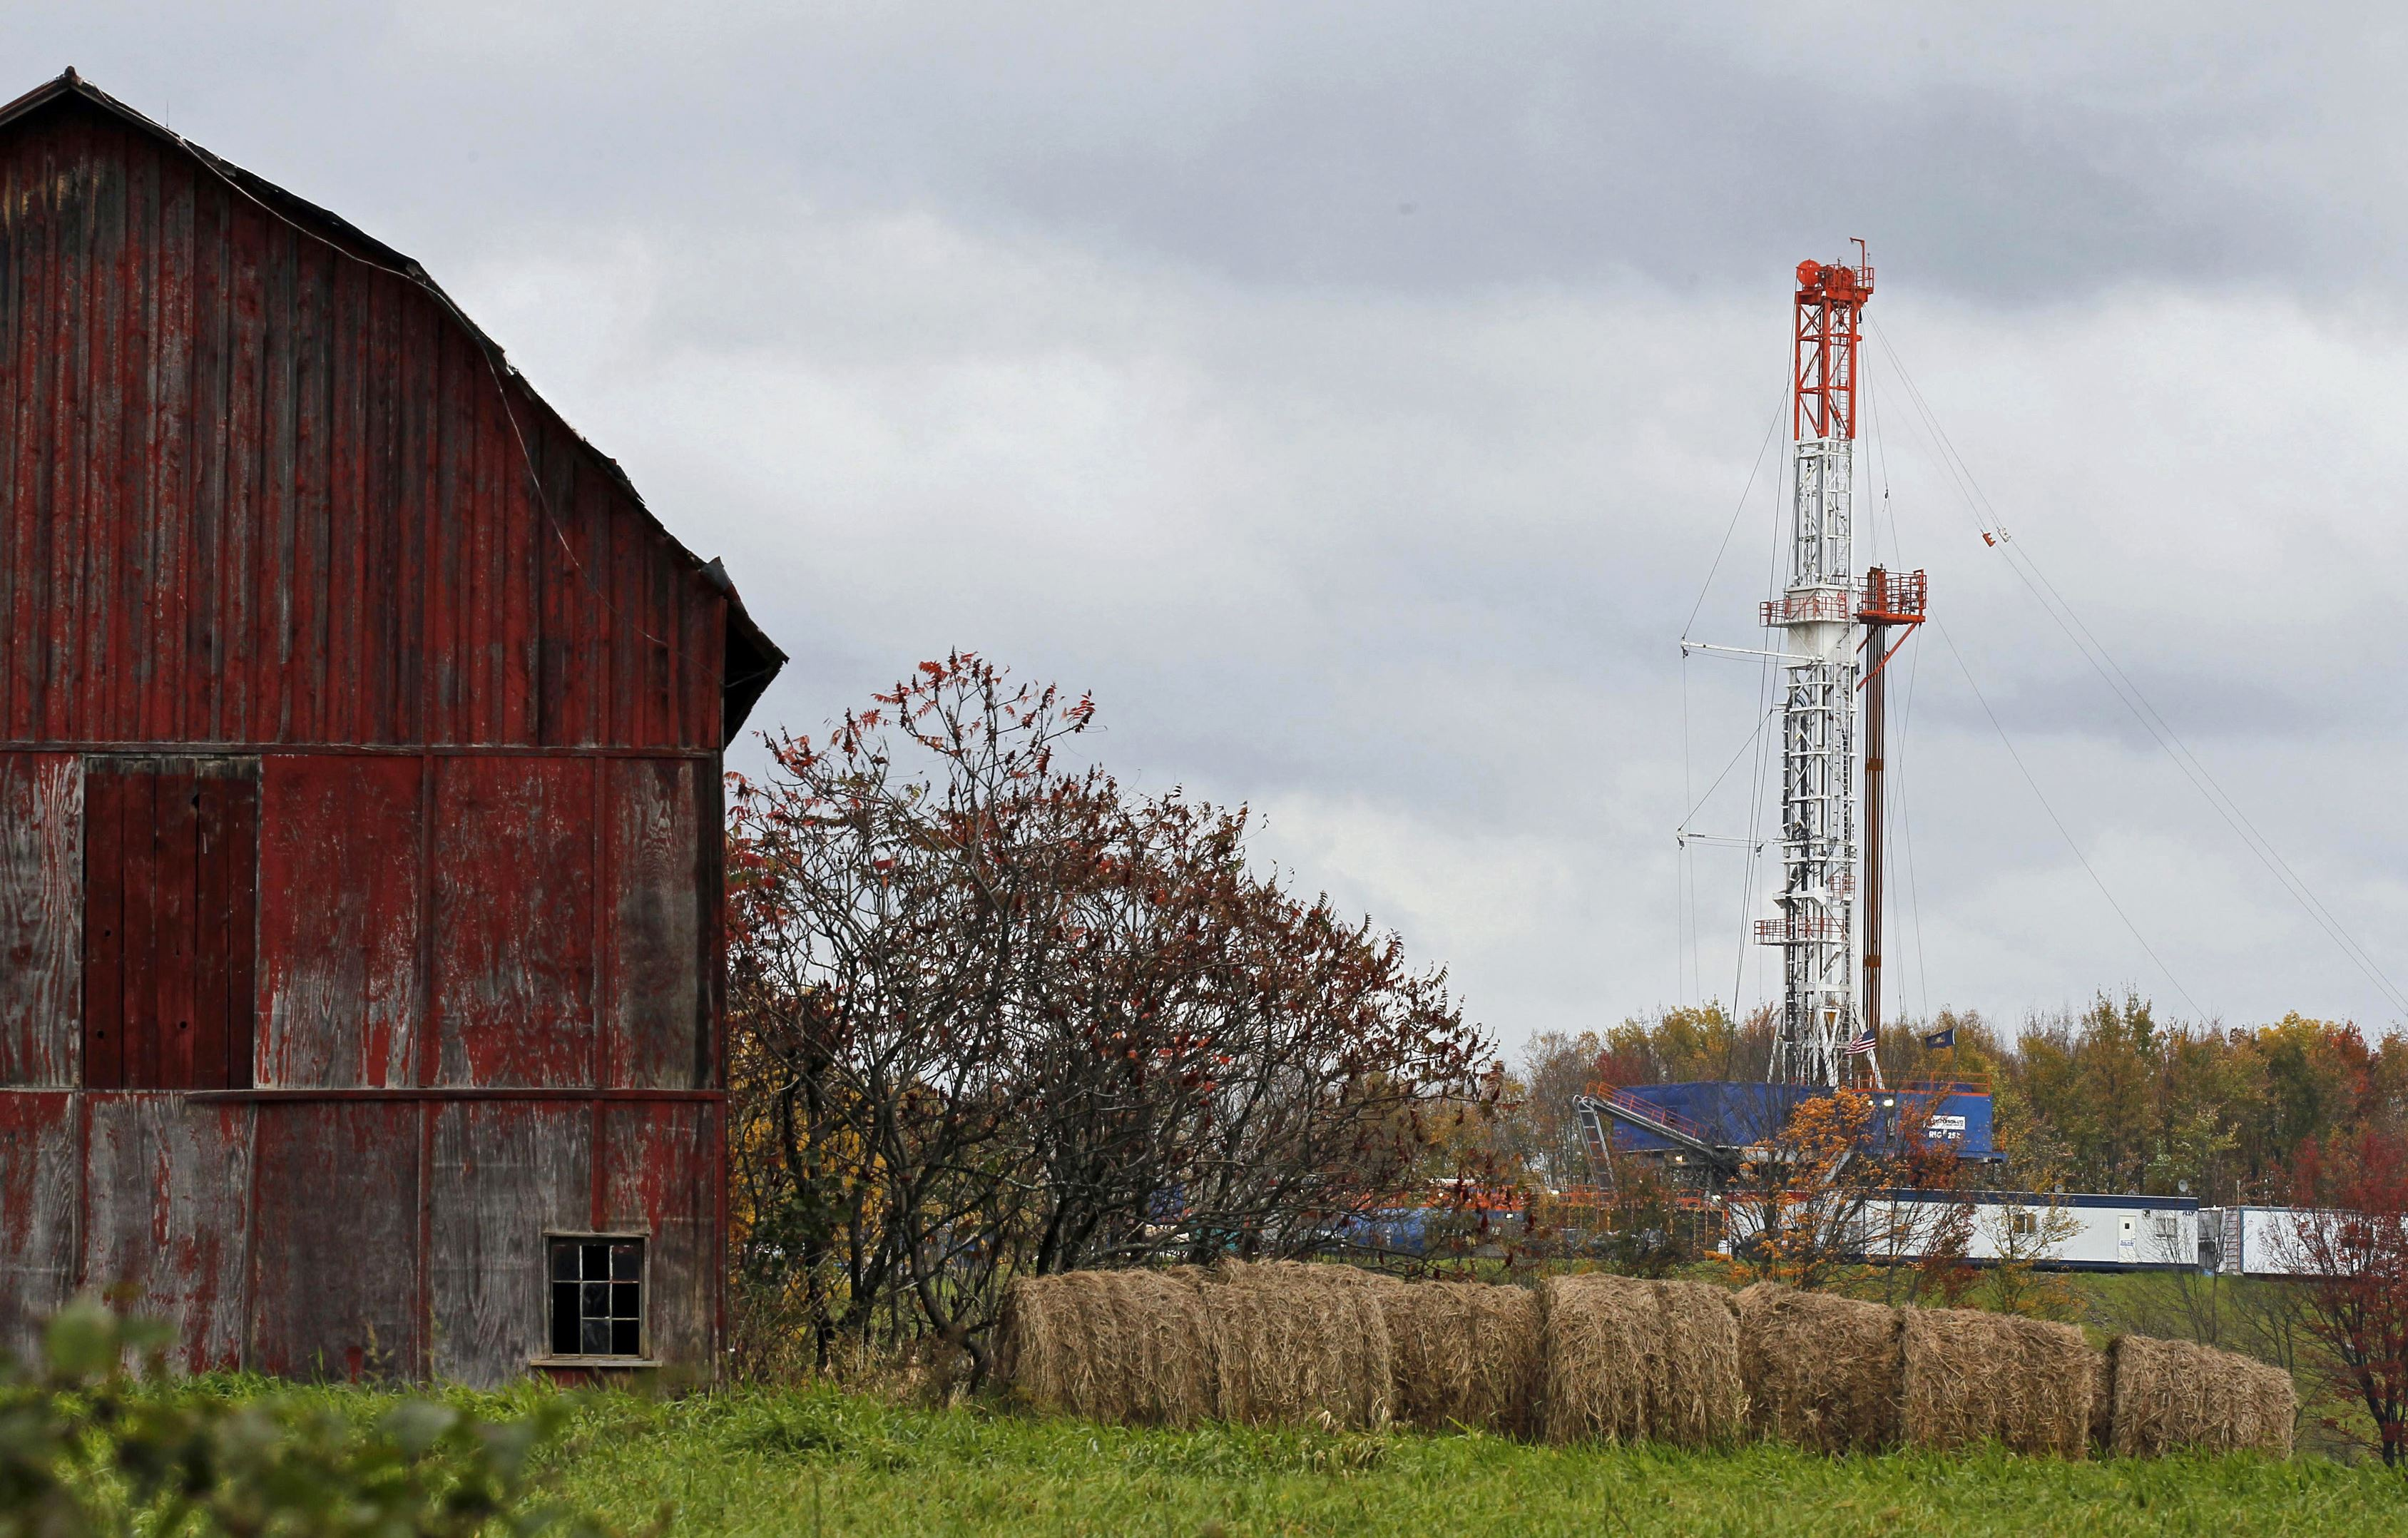 Gas Drilling Signs of Life-1 In this Oct. 14, 2011, file photo, a drilling rig is set up to tap gas from the Marcellus Shale gas field, near a barn in the Susquehanna County township of Springville, Pa.